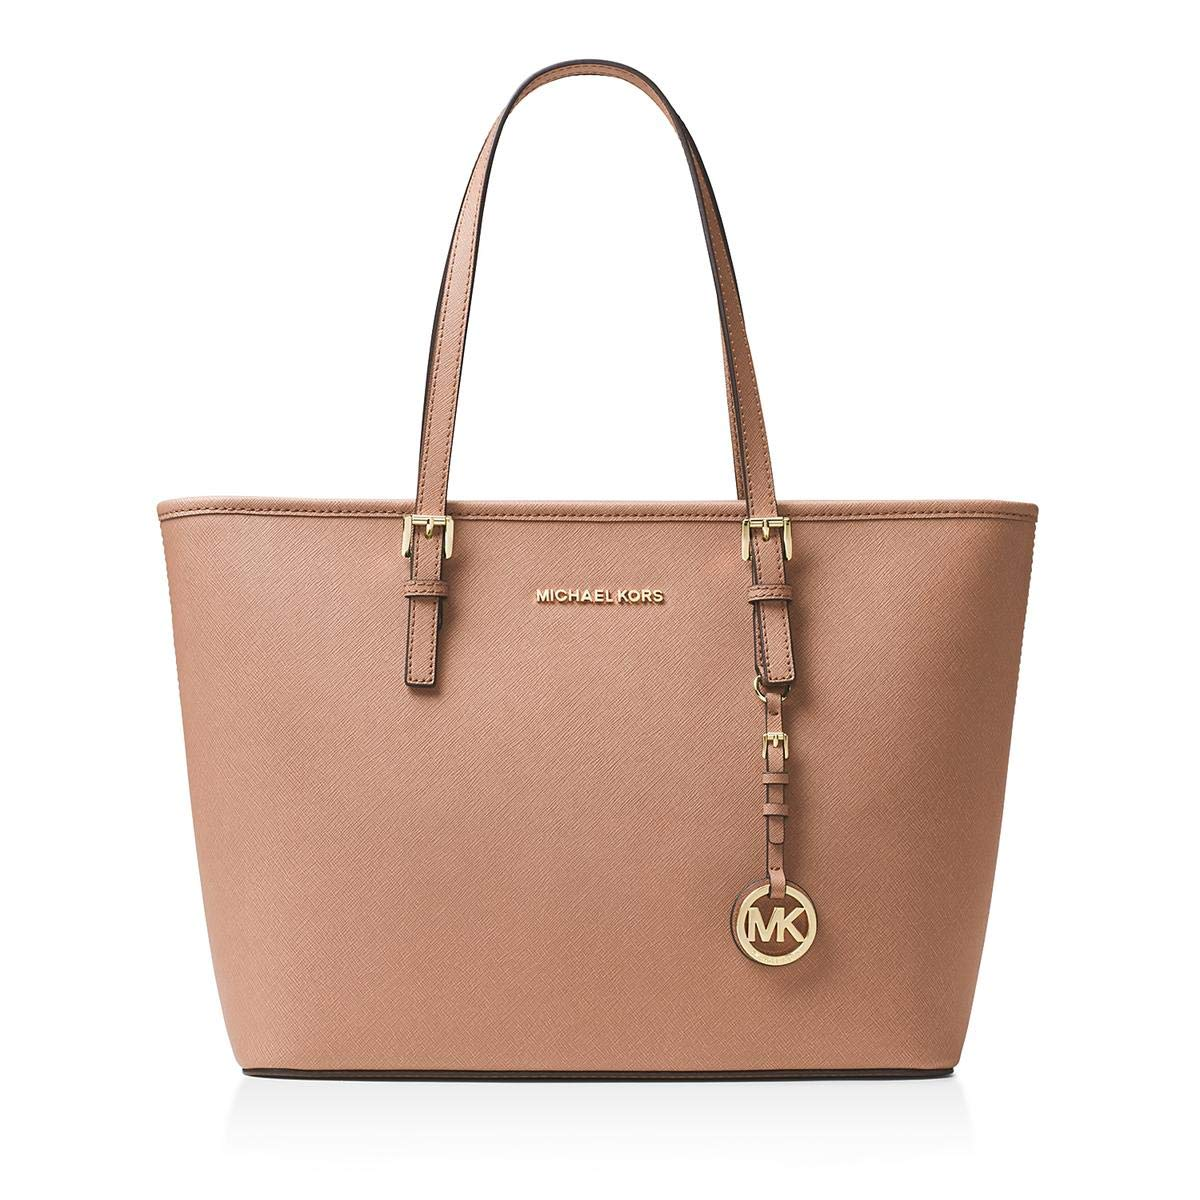 9907c71ee726 Amazon.com  Michael kors Jet Set Travel Top Zip toe in Blush.  Shoes